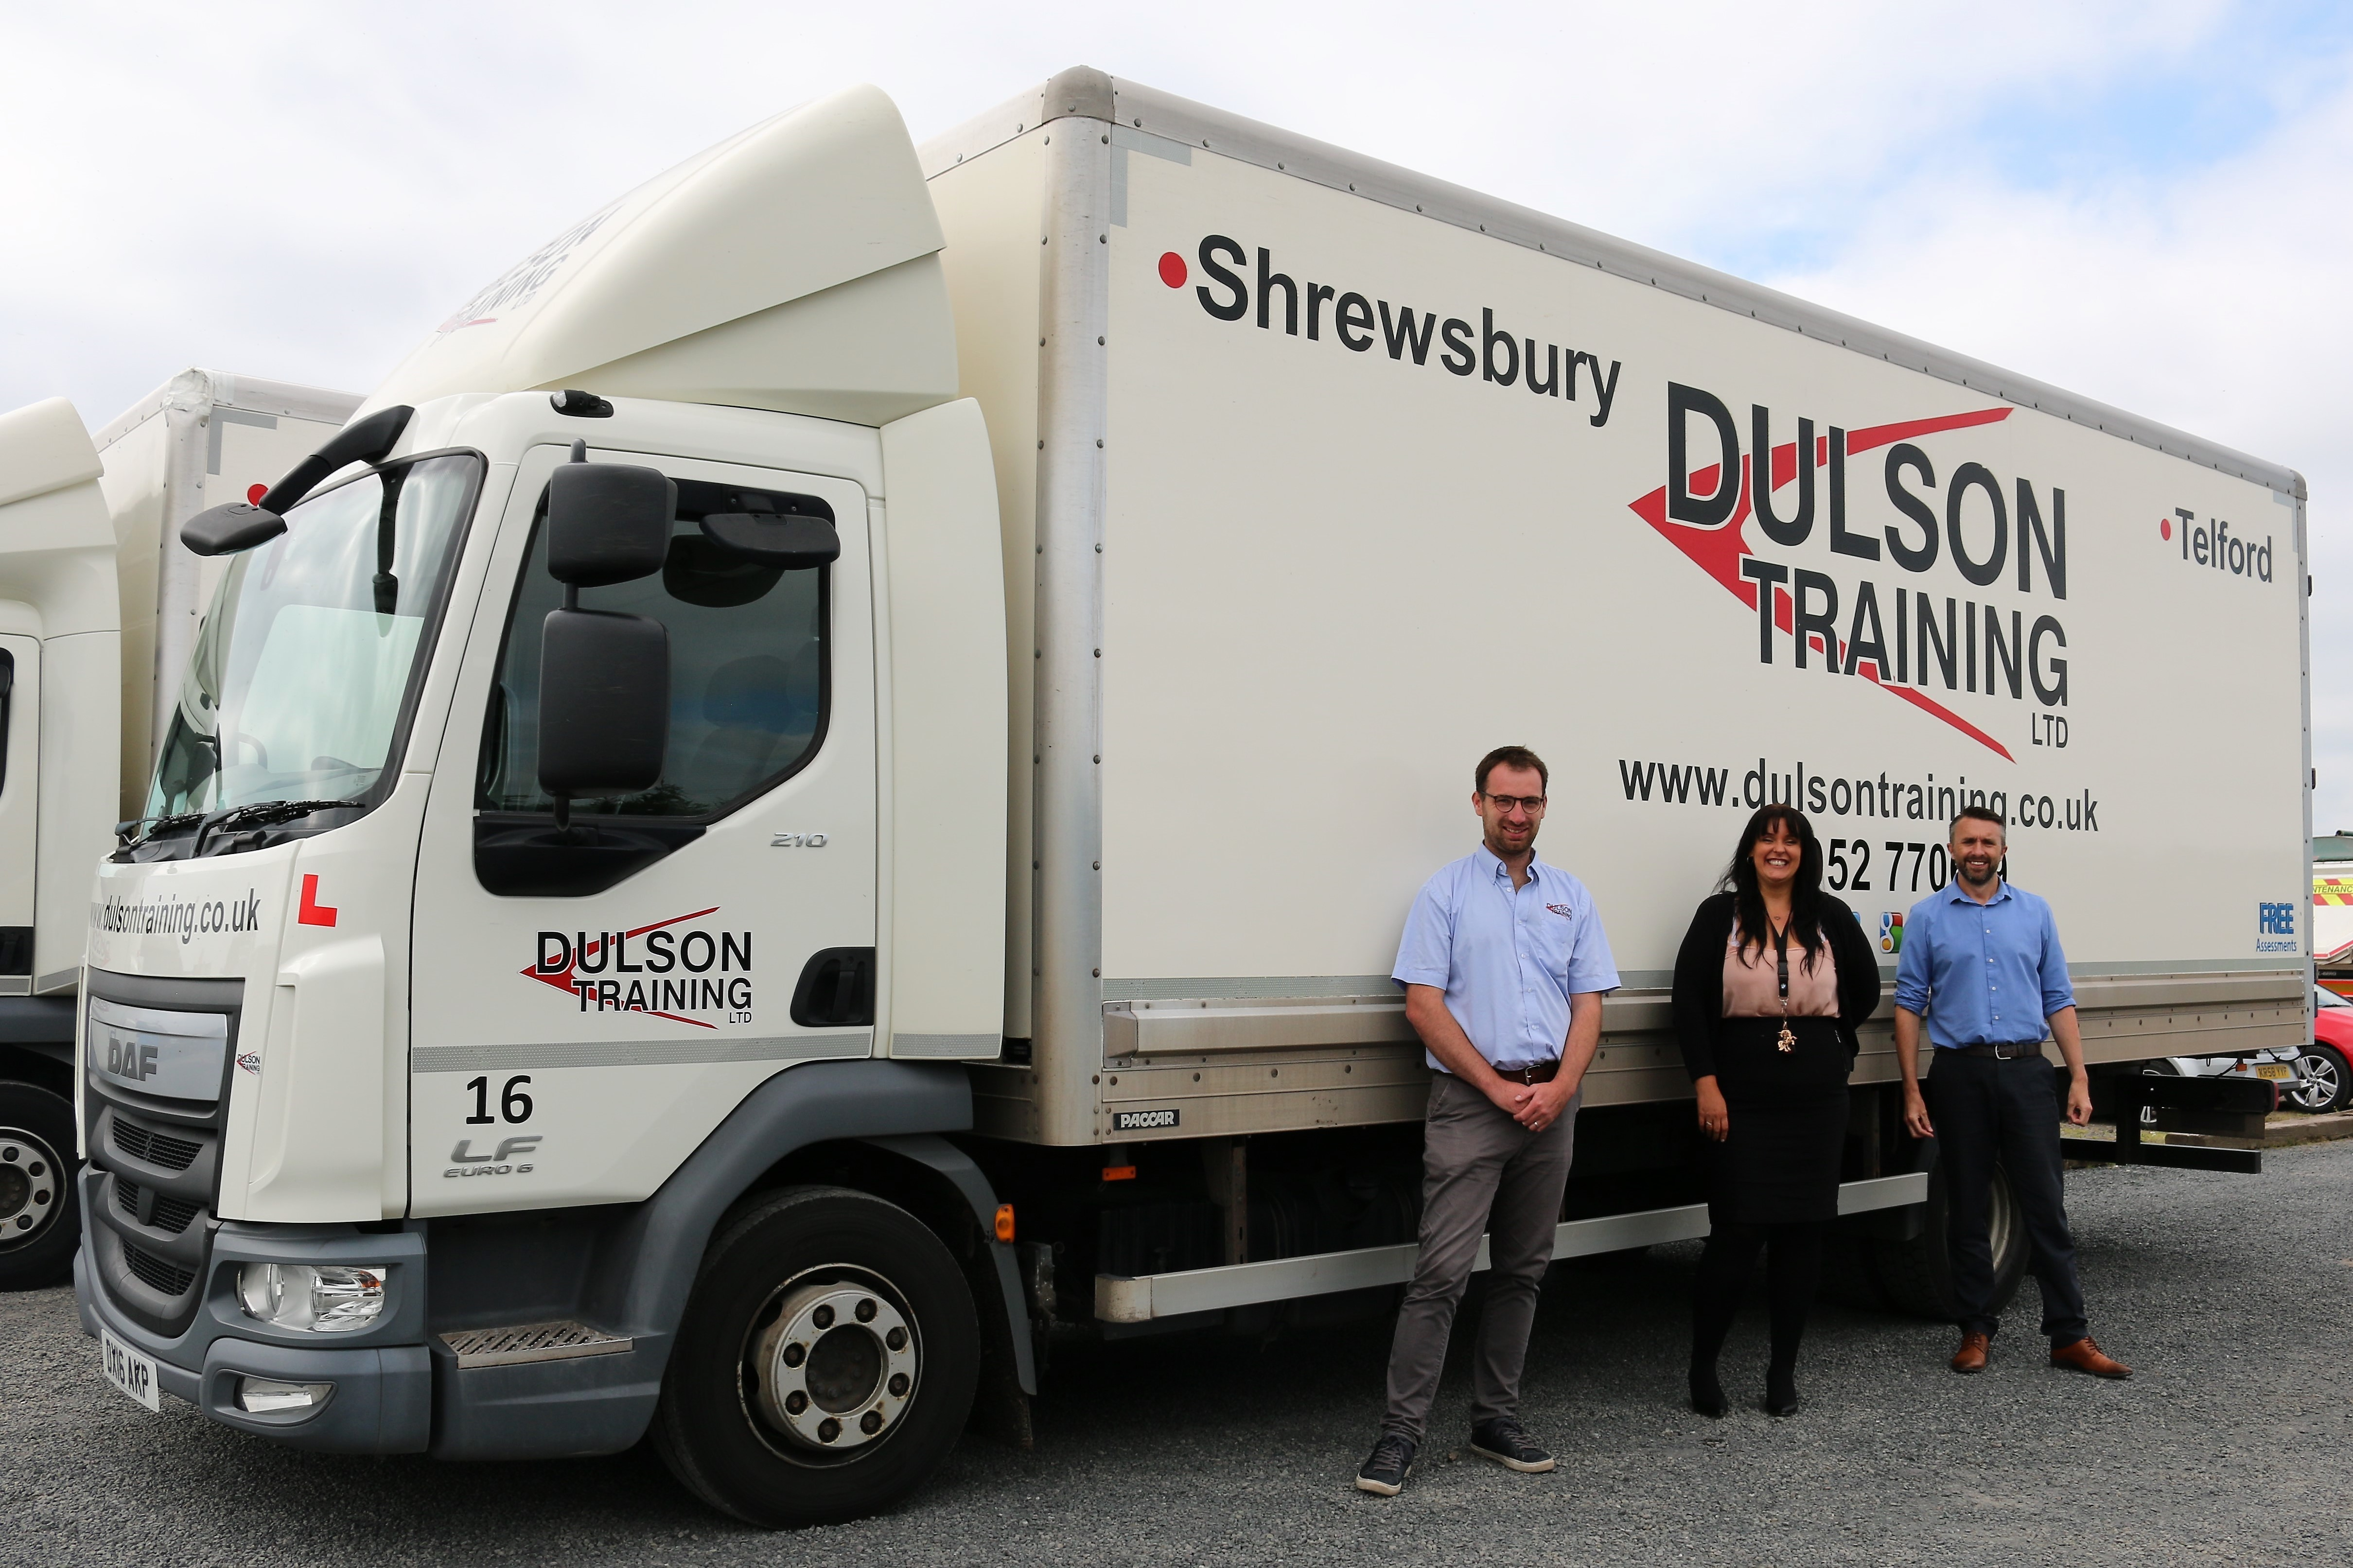 Dulson Training Helps 21 Job Seekers with Forklift Training